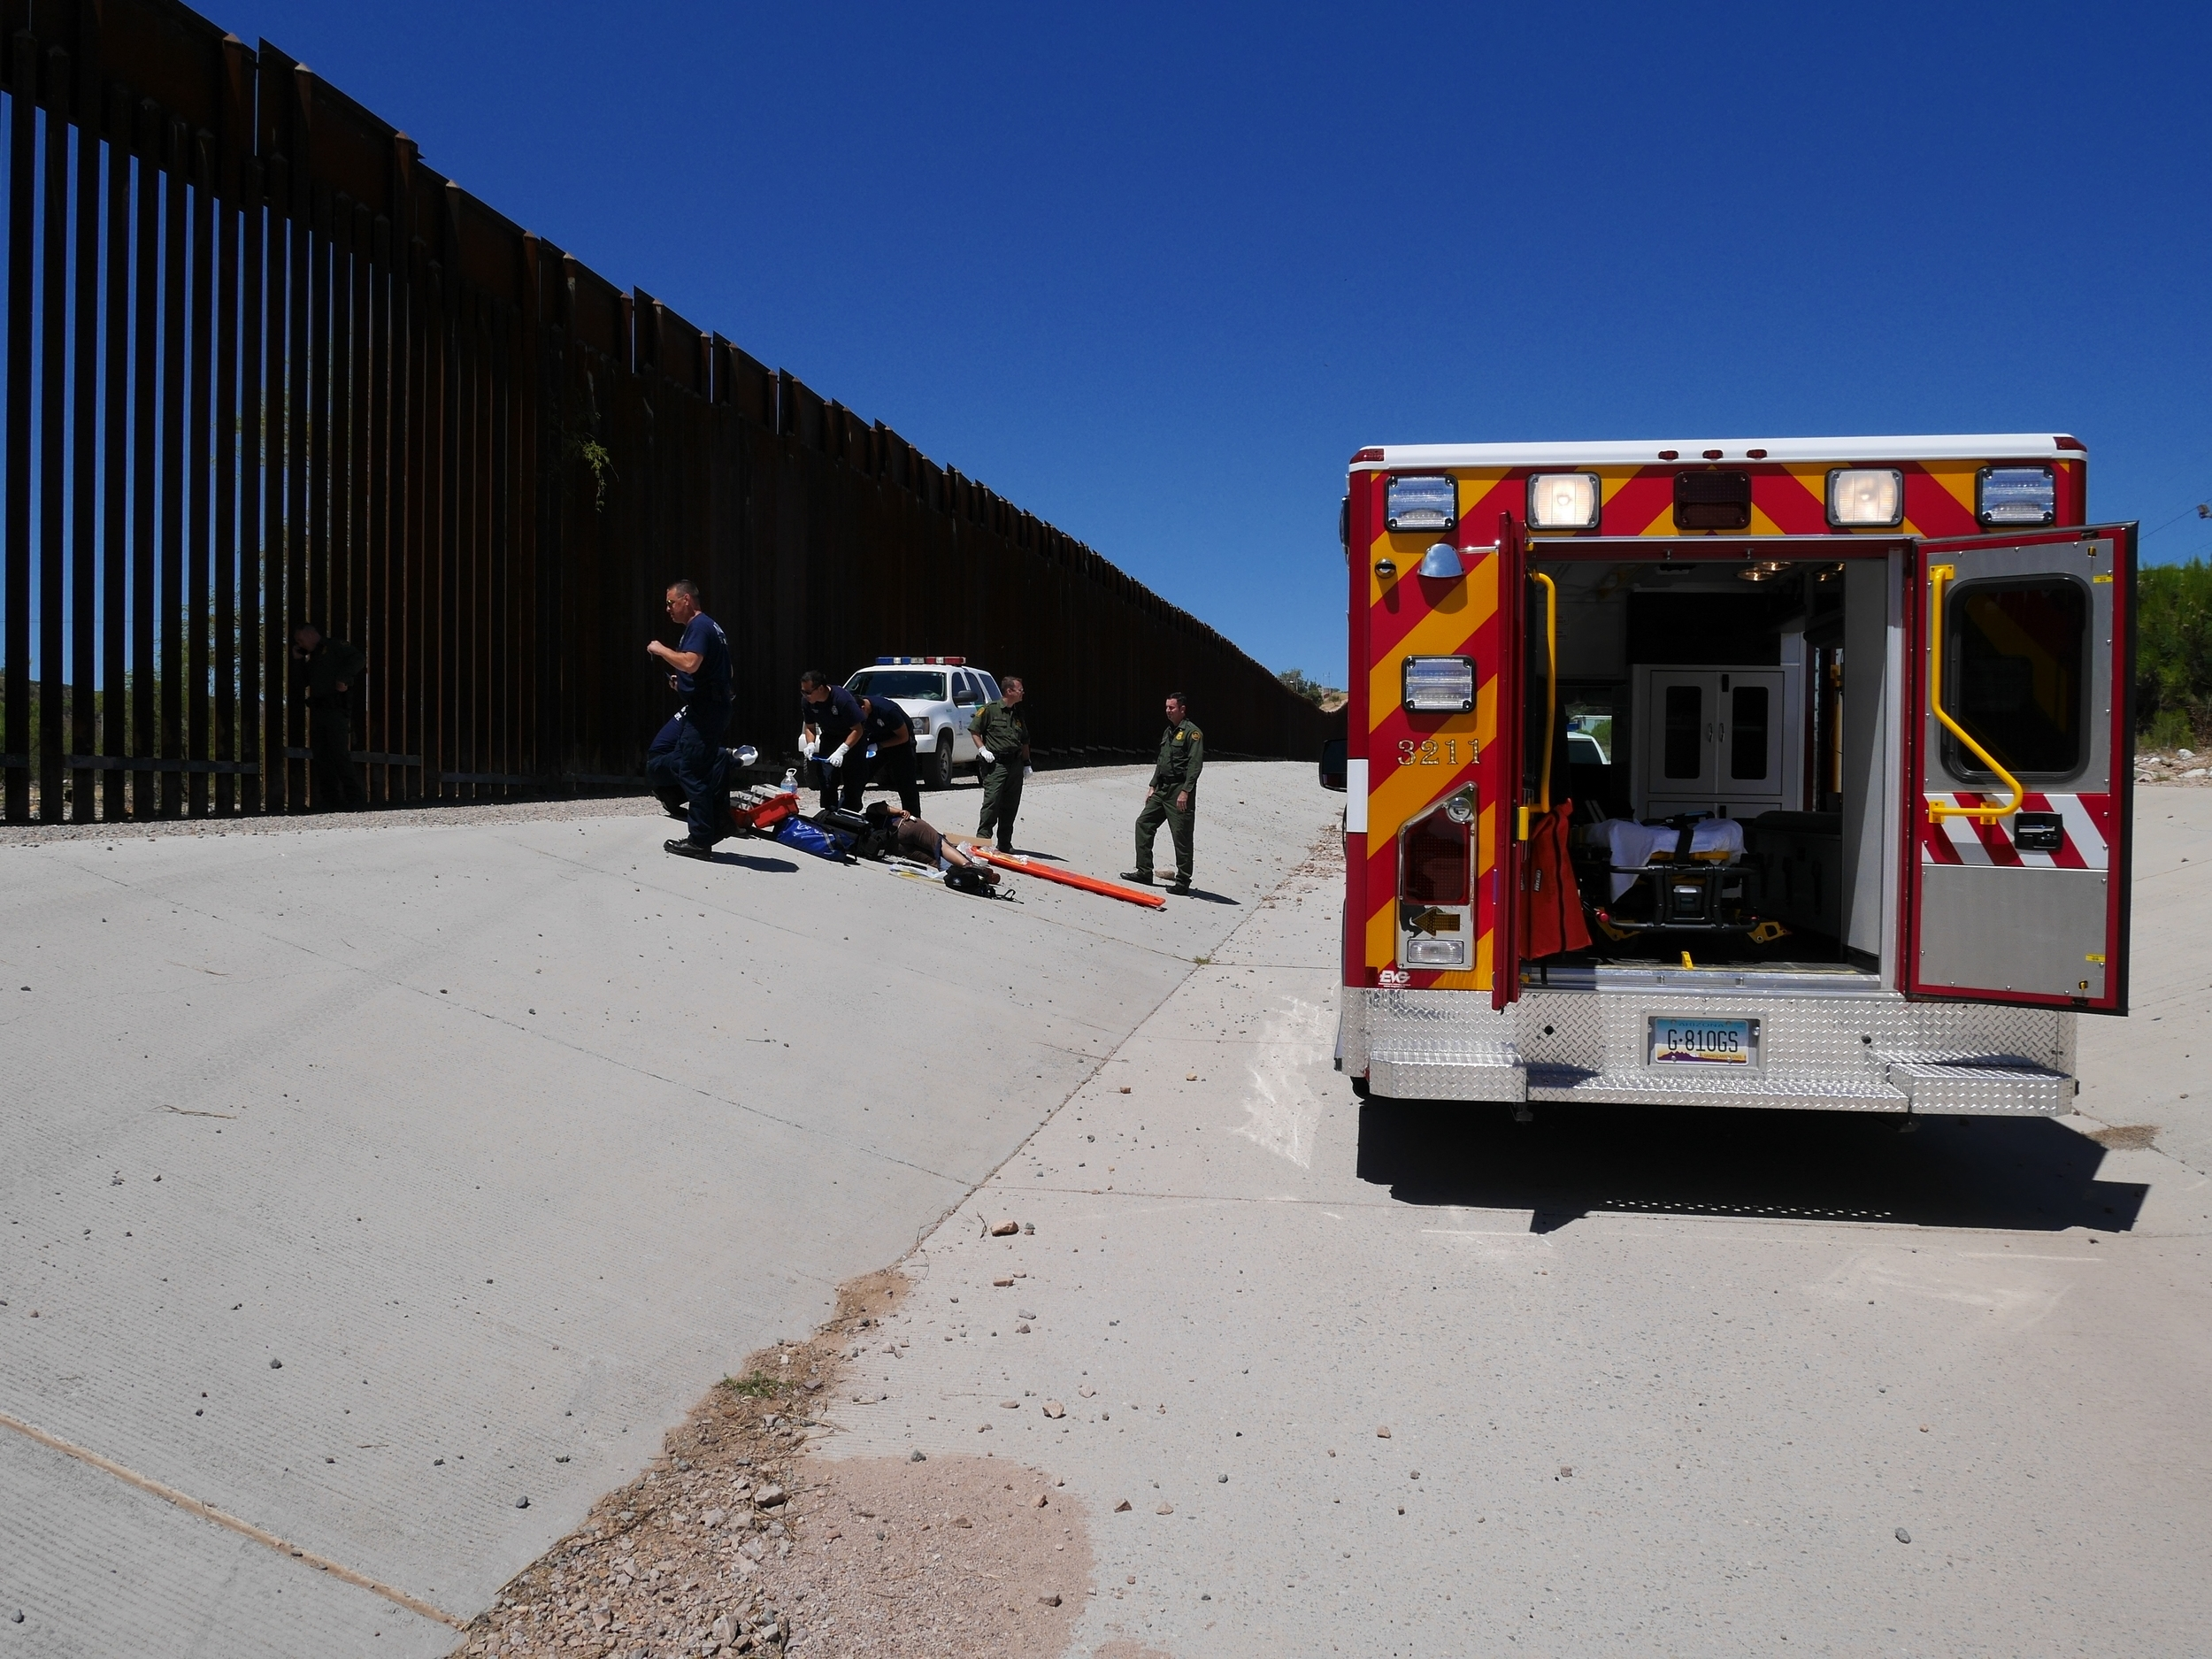 Paramedics from the Nogales Fire Department provide emergency care to an injured woman who fell off the border fence. May 2015. Photo by Ieva.